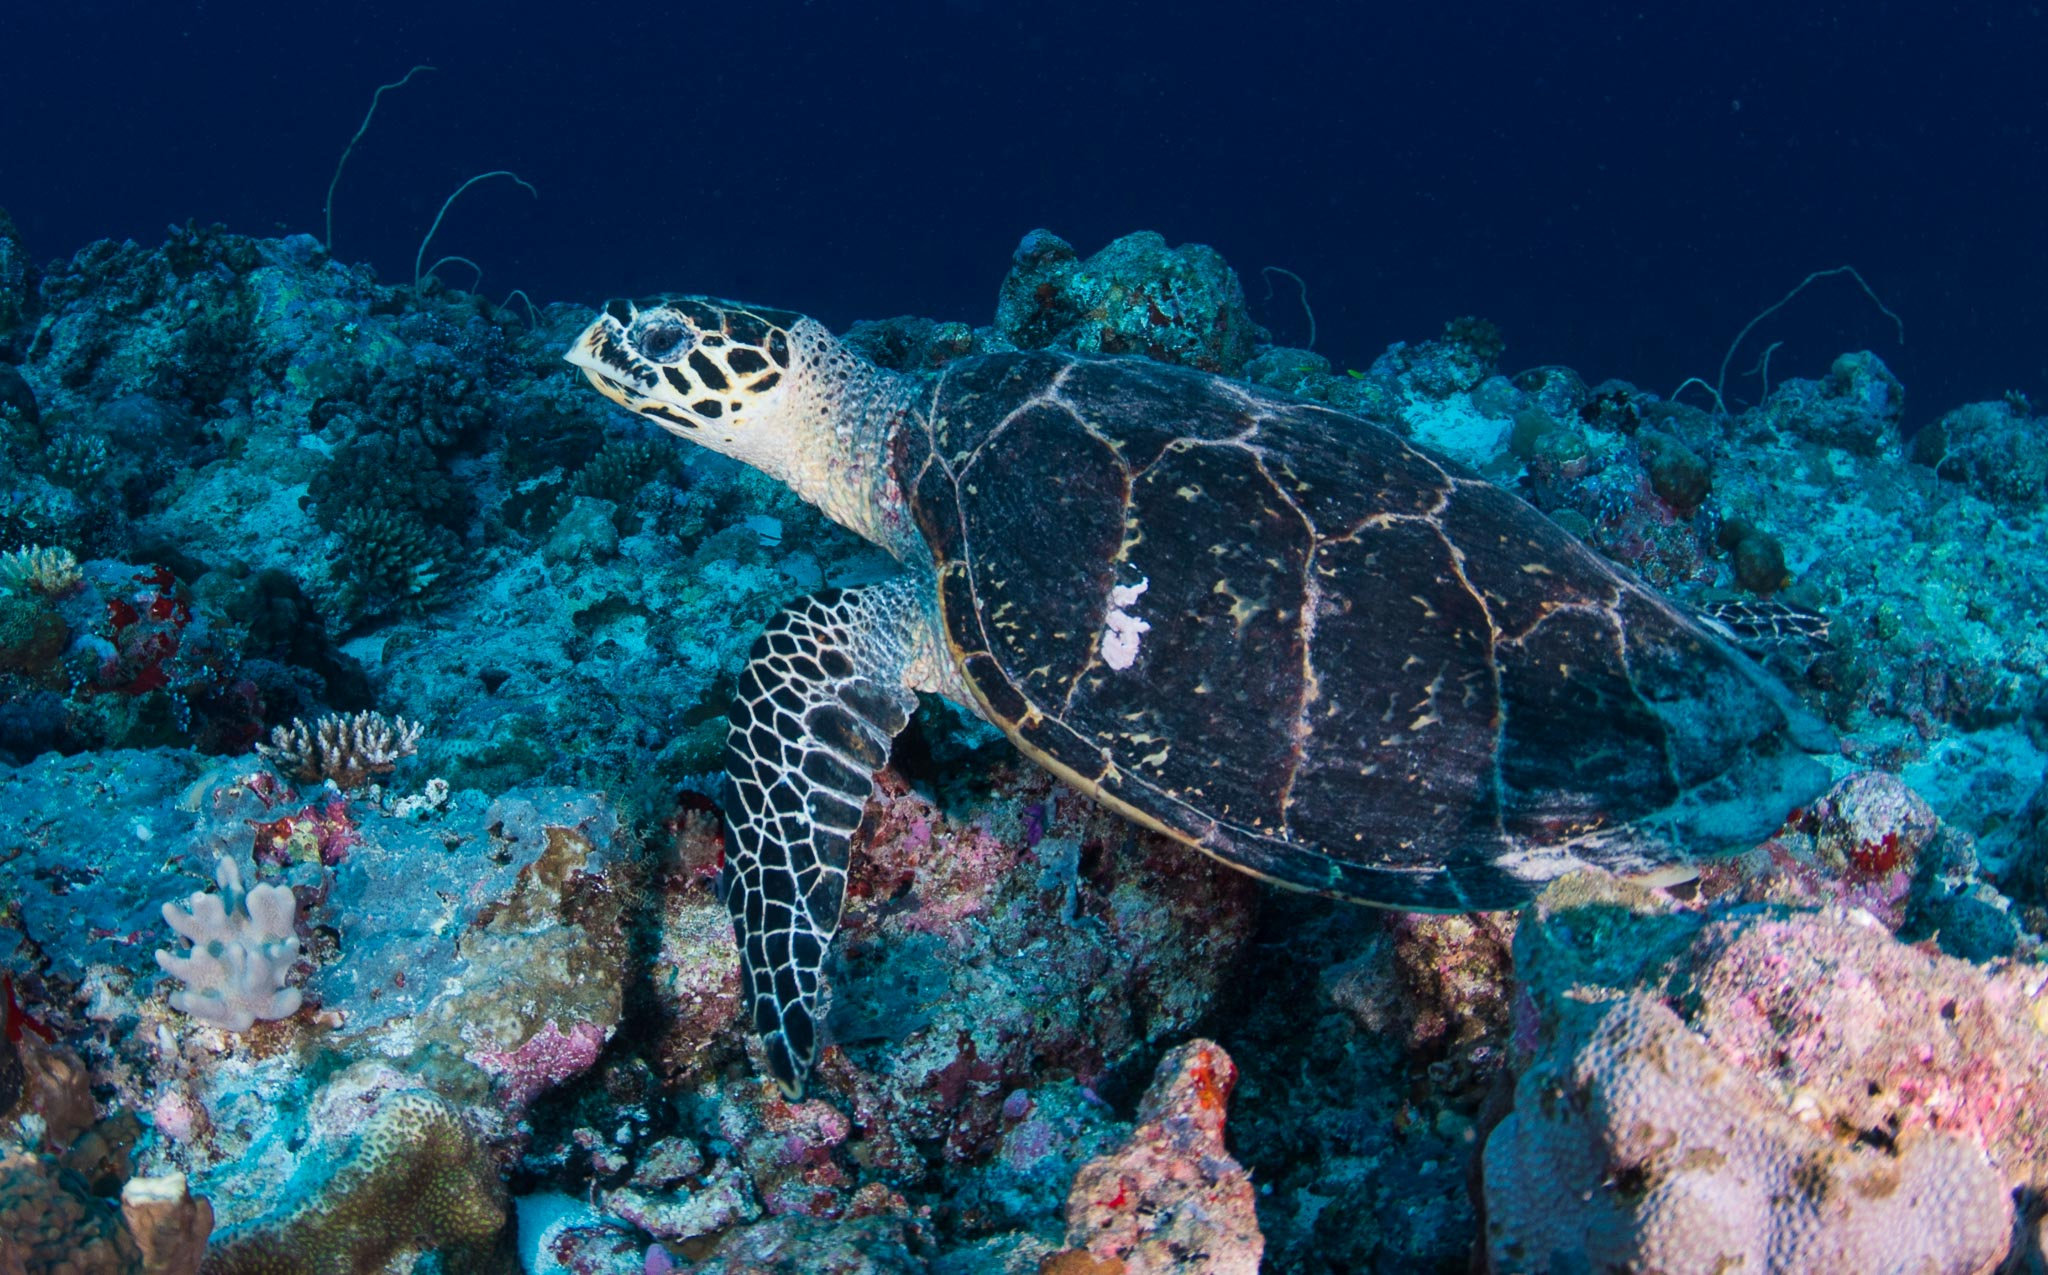 Turtle Hawksbill Eating Coral Palau